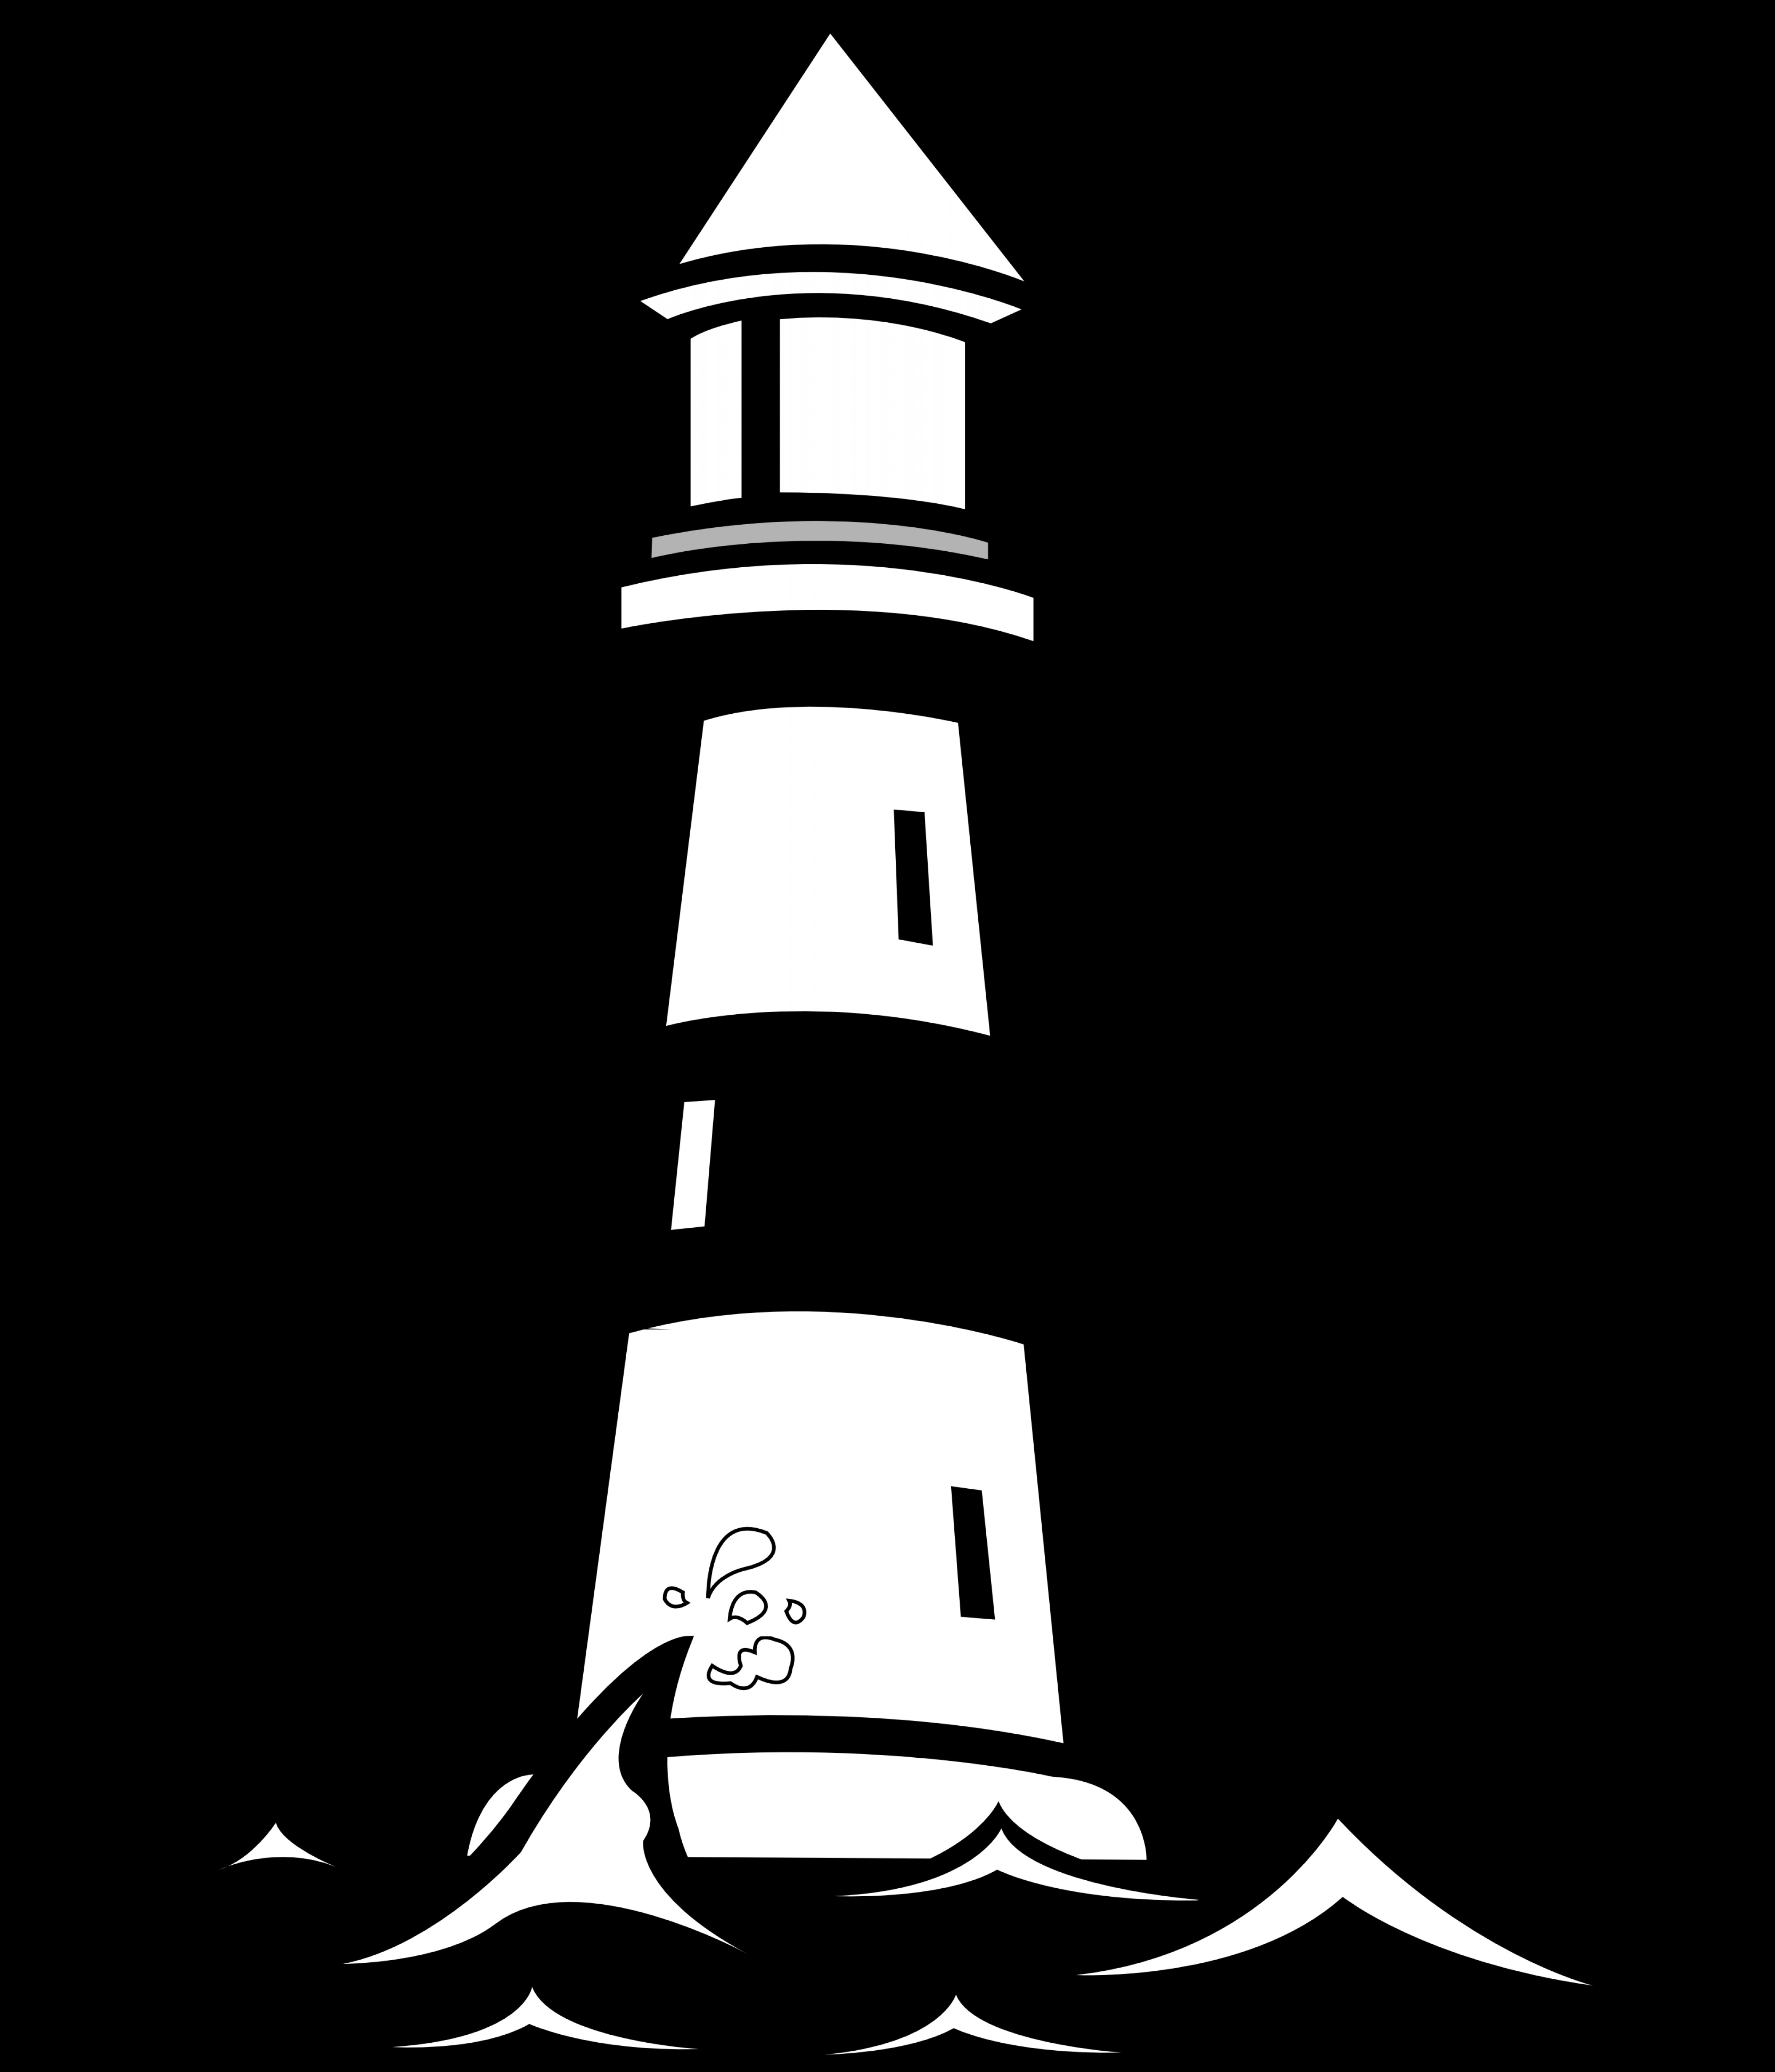 Lighthouse with waves clipart black and white svg black and white download Light House Clipart Black And White | SOIDERGI svg black and white download